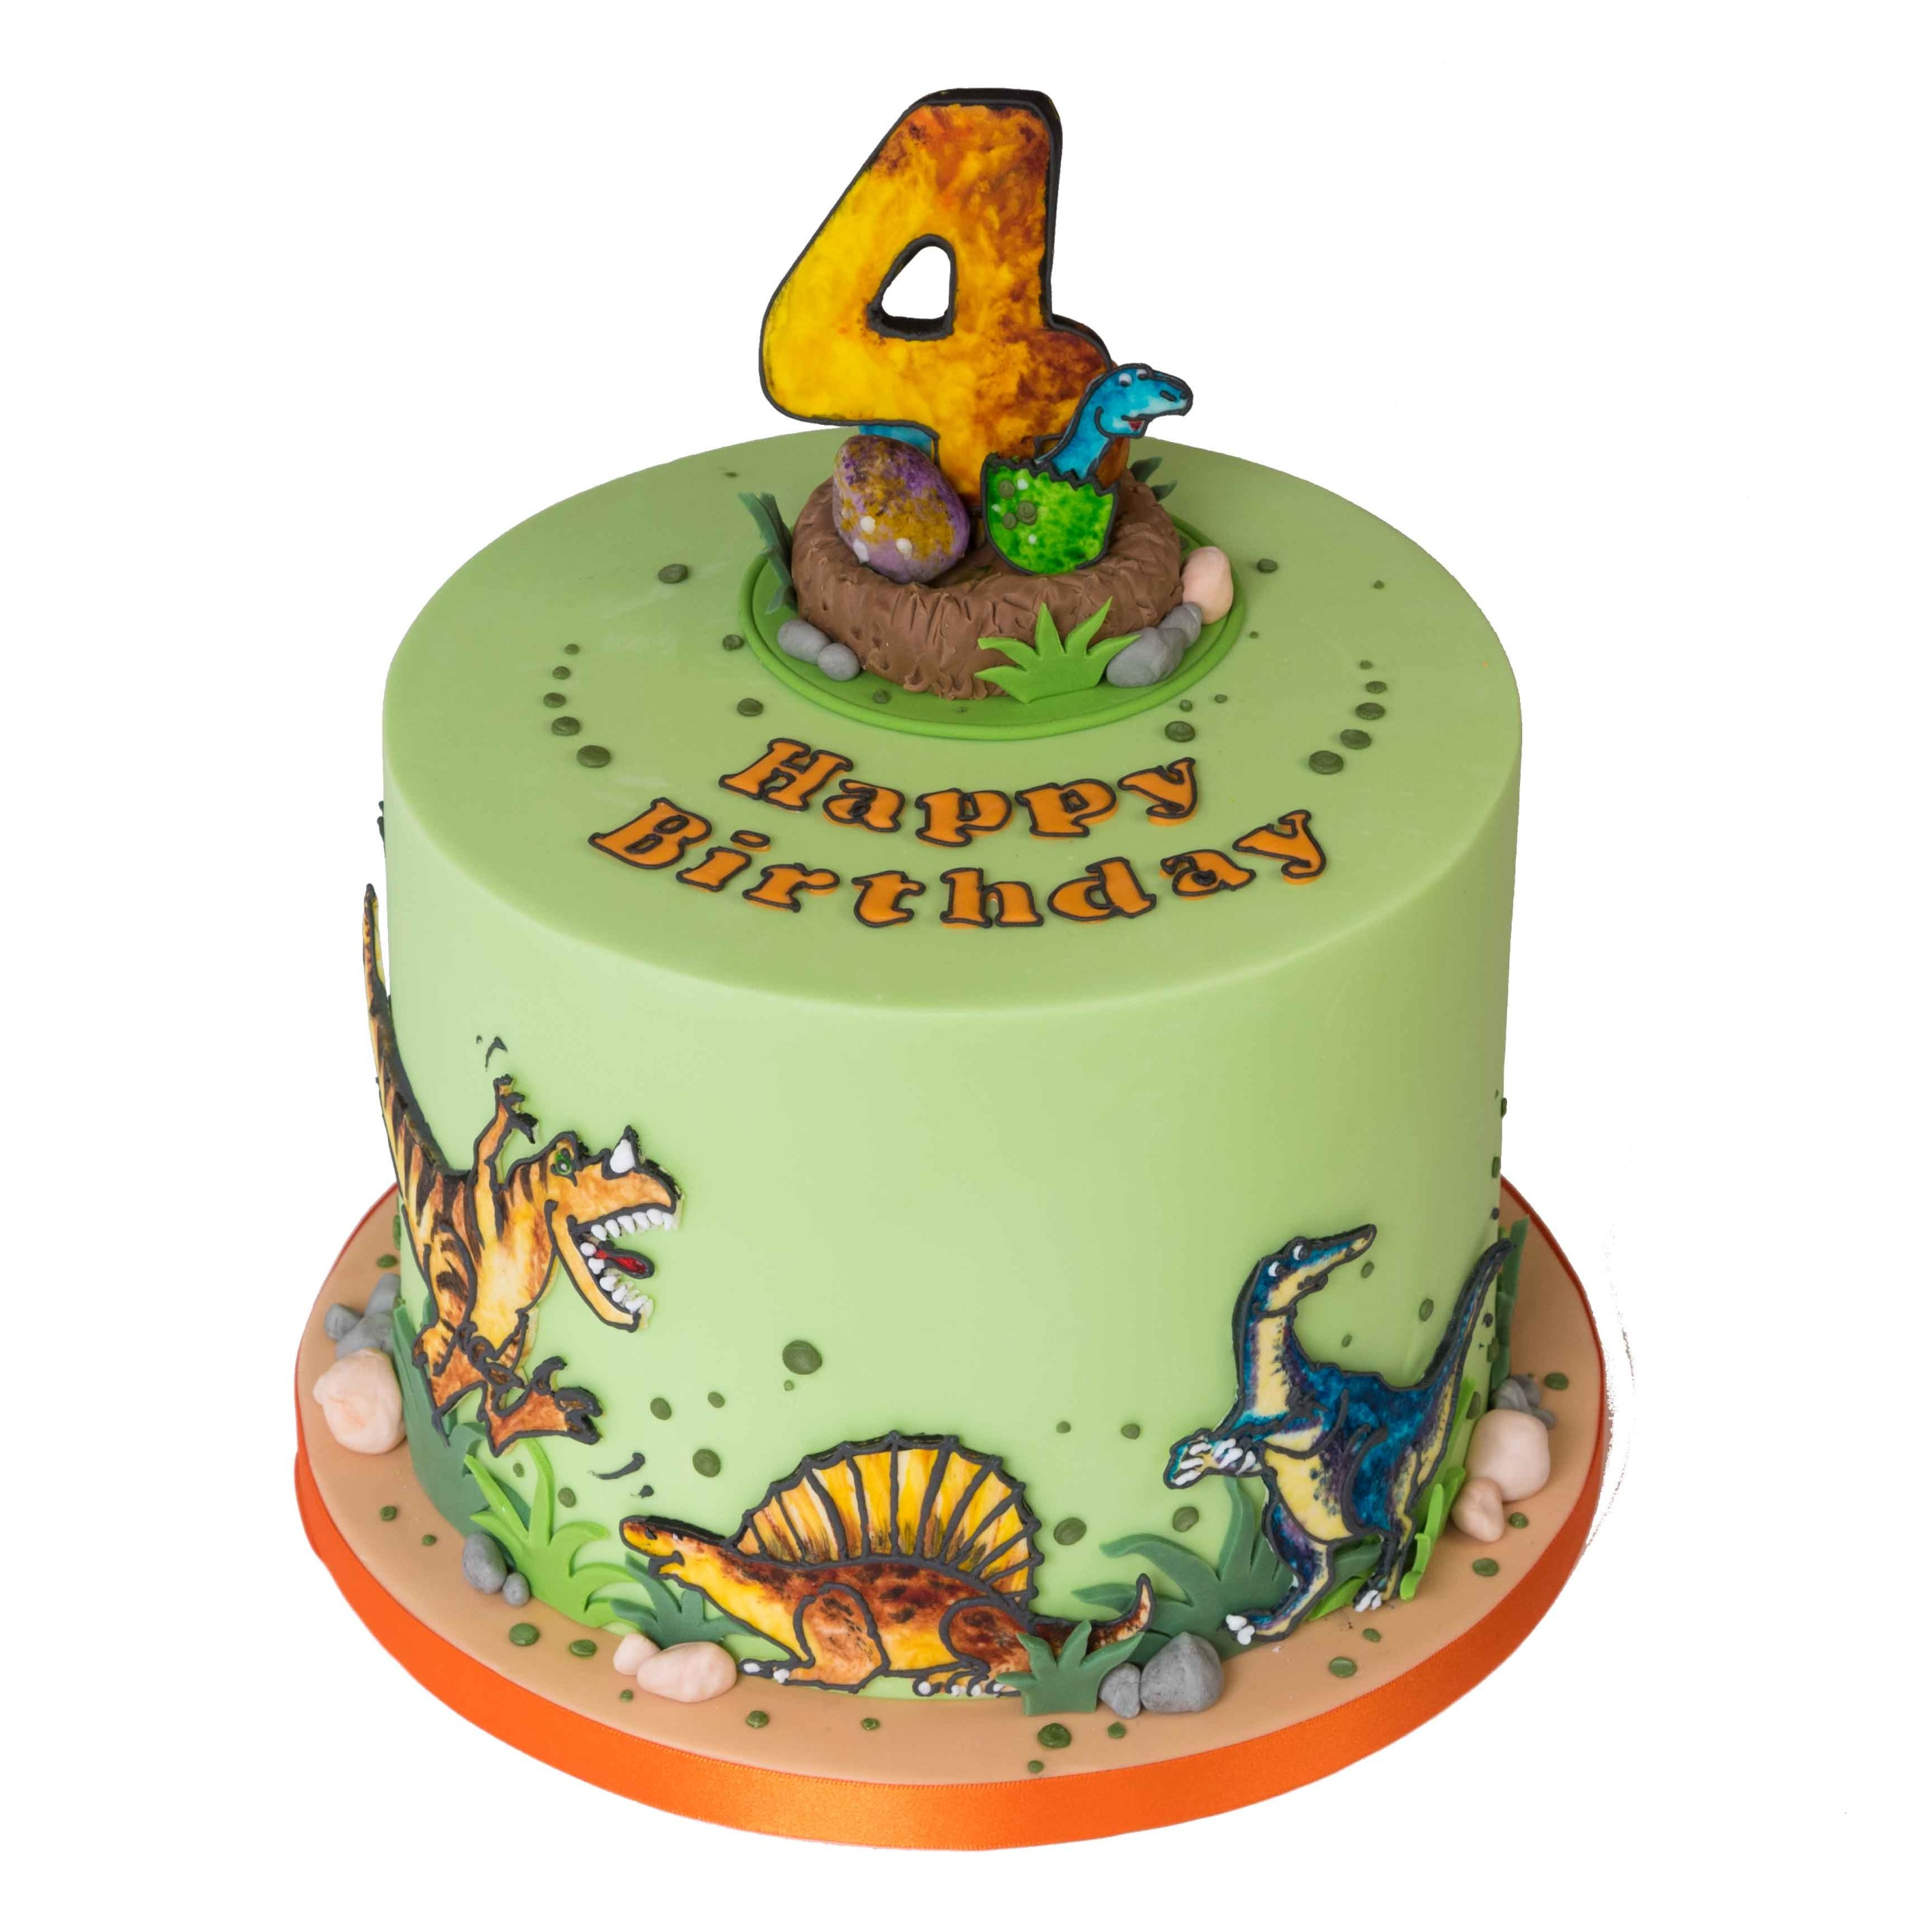 35+ Great Image of Dinosaur Birthday Cakes